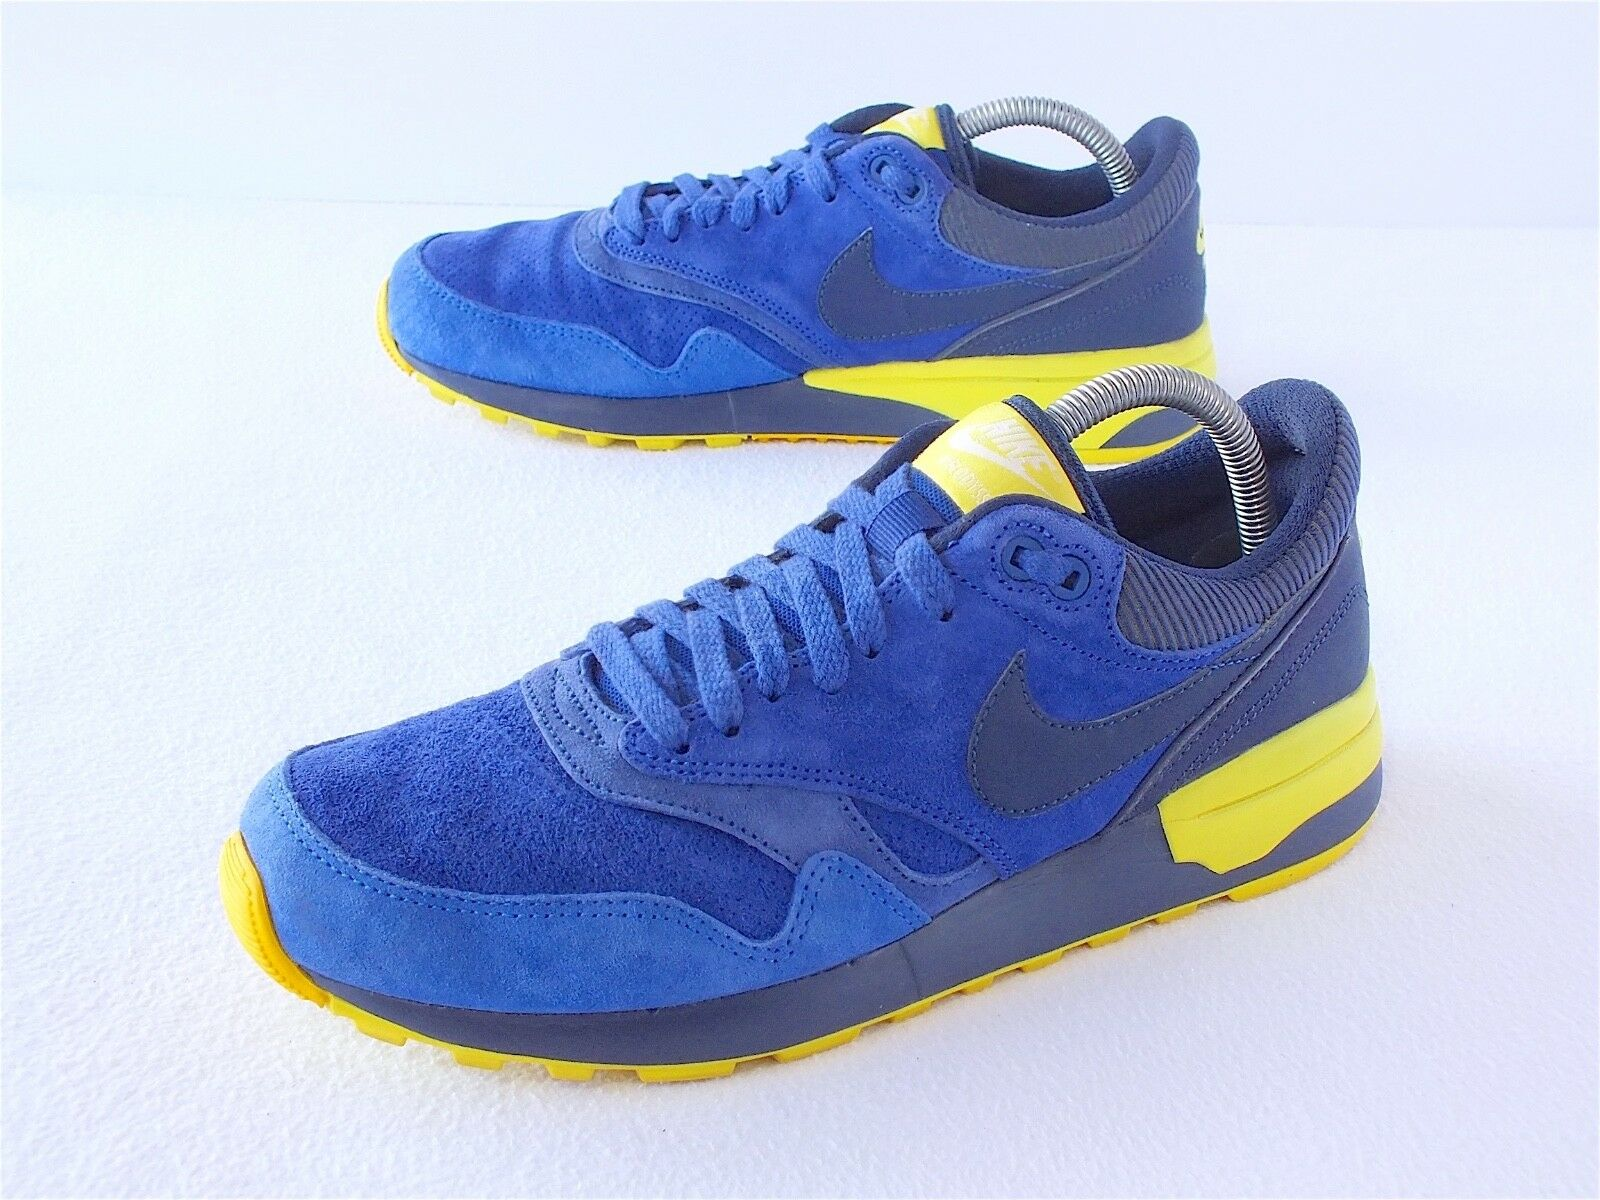 23f0eacacfaae ... Nike Nike Nike Air Odyssey Ltr Men s Running Shoes Midnight Navy Light  Voltage Size 8 ...